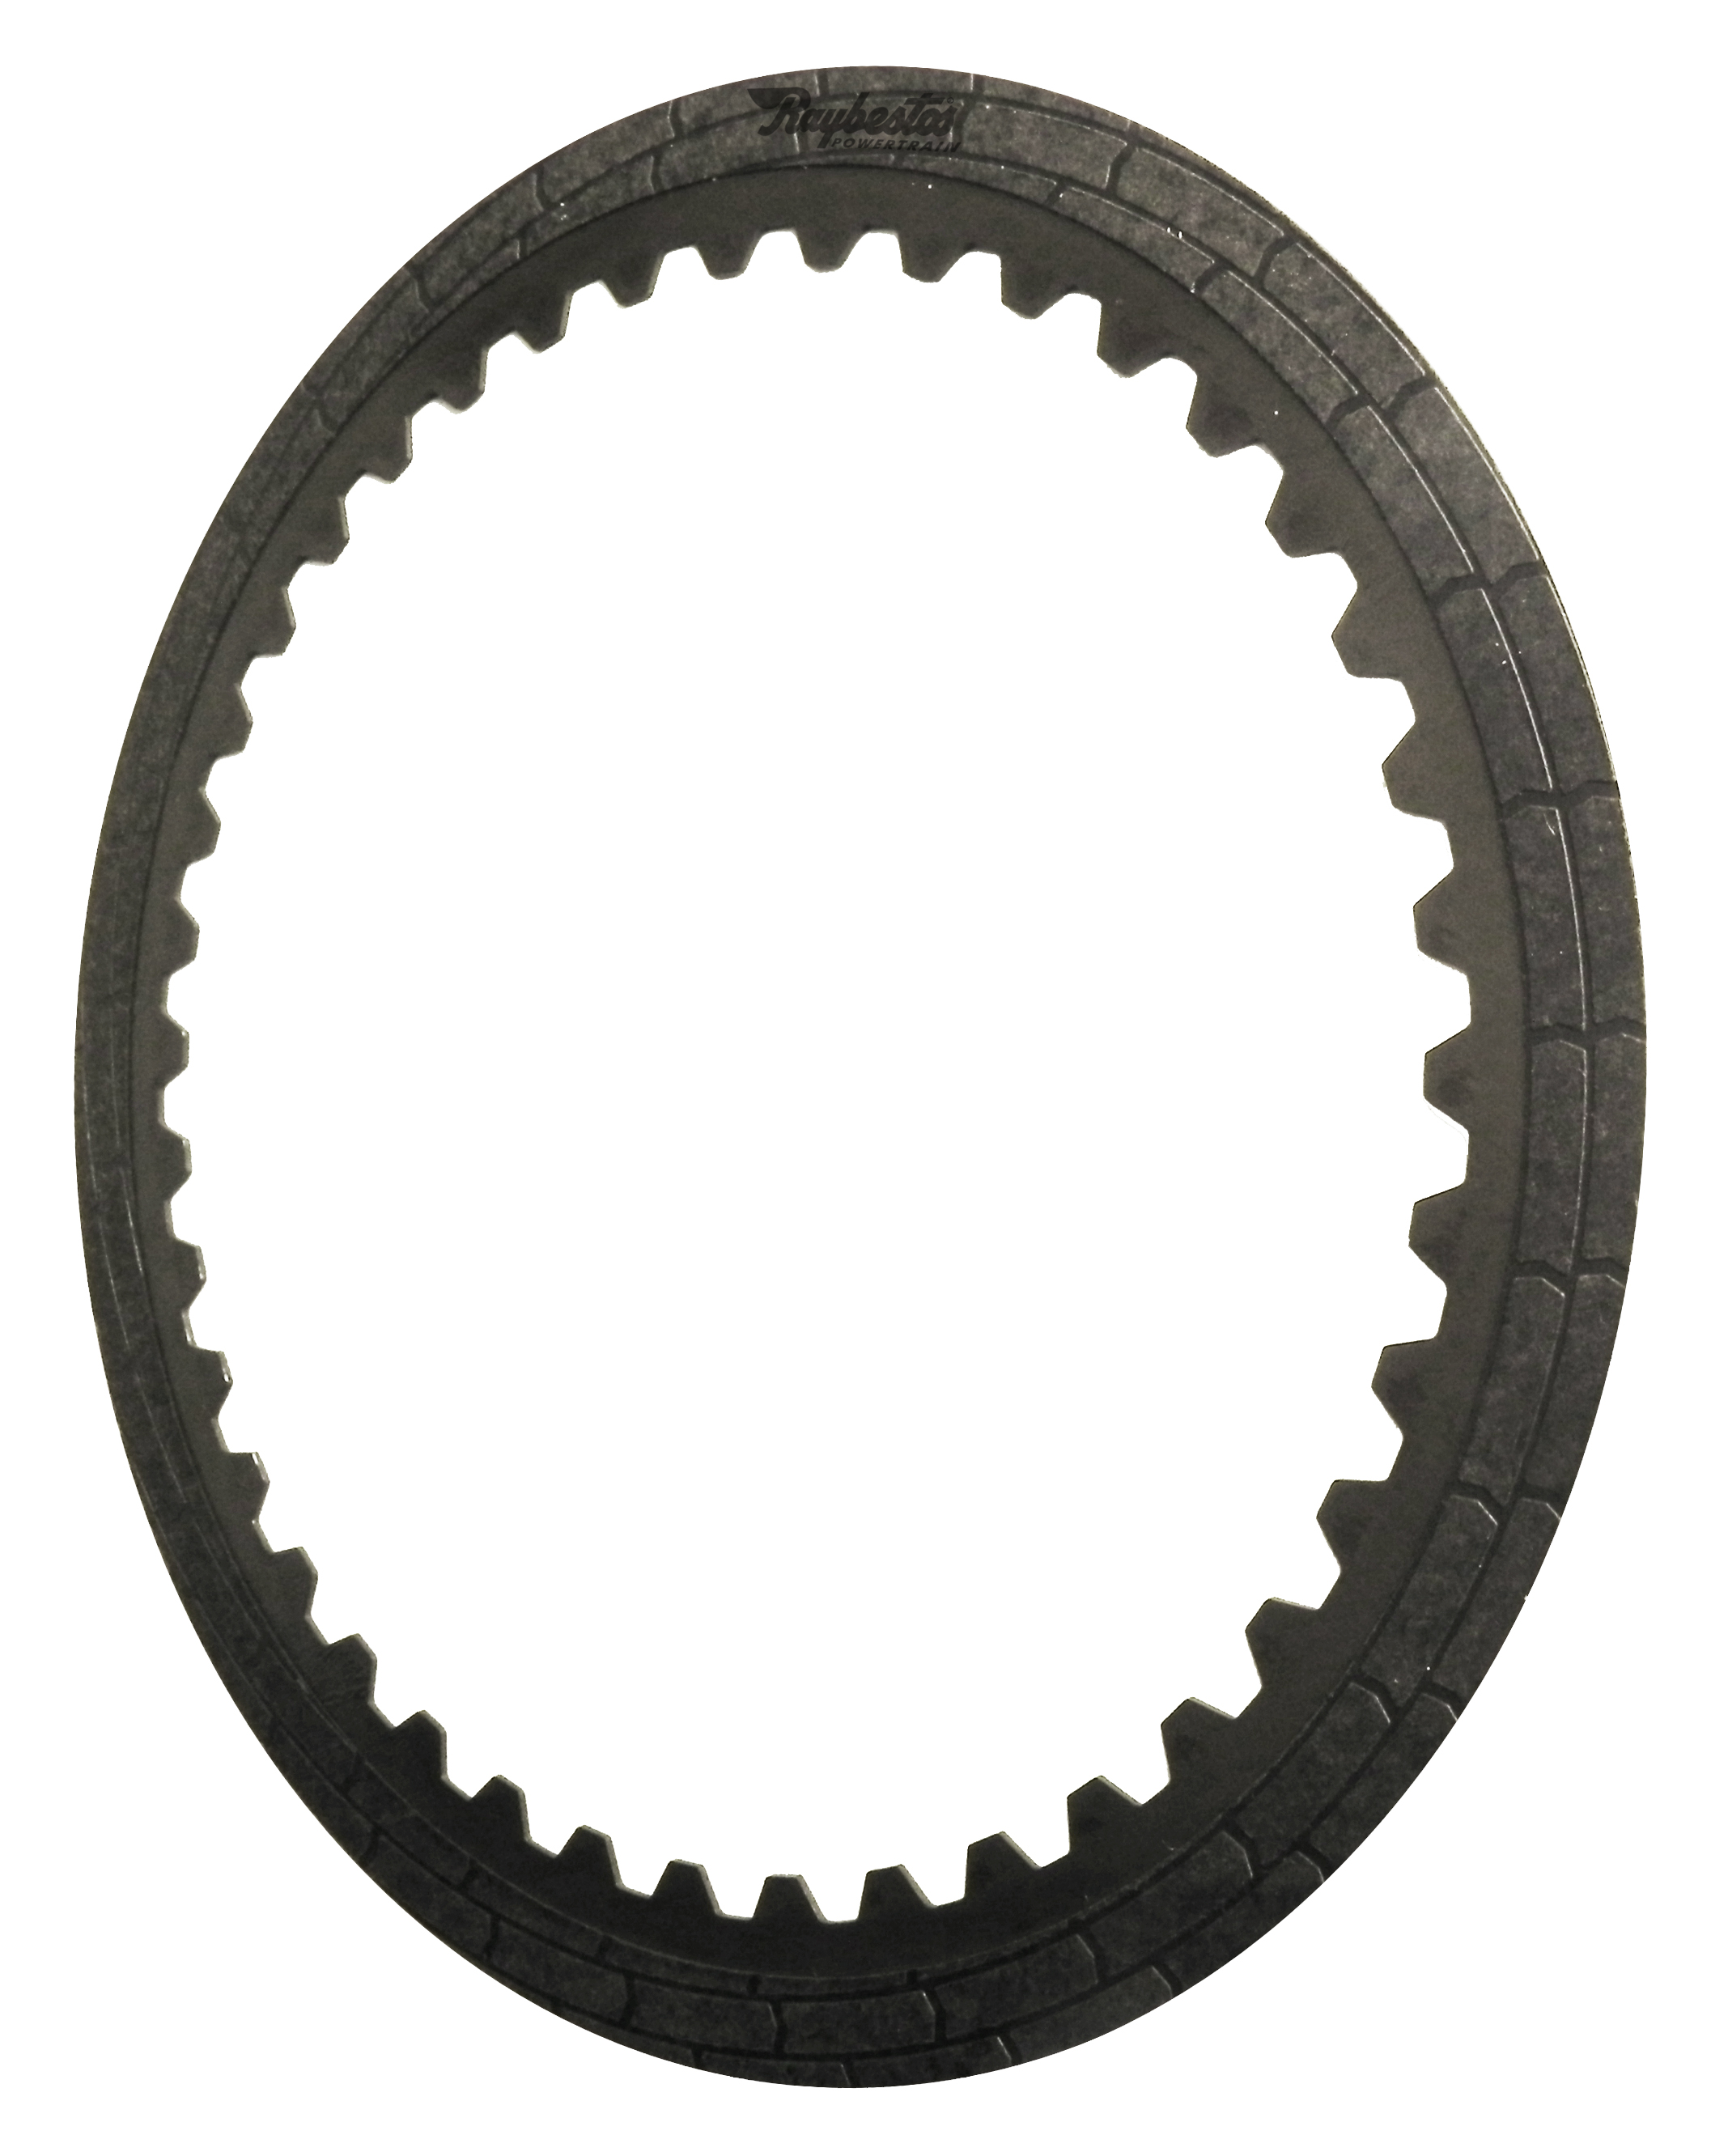 RH558585 | 2007-ON Friction Clutch Plate (HT) Hybrid Technology #2 Brake (1st) (Reverse) Proprietary High Energy (HT)